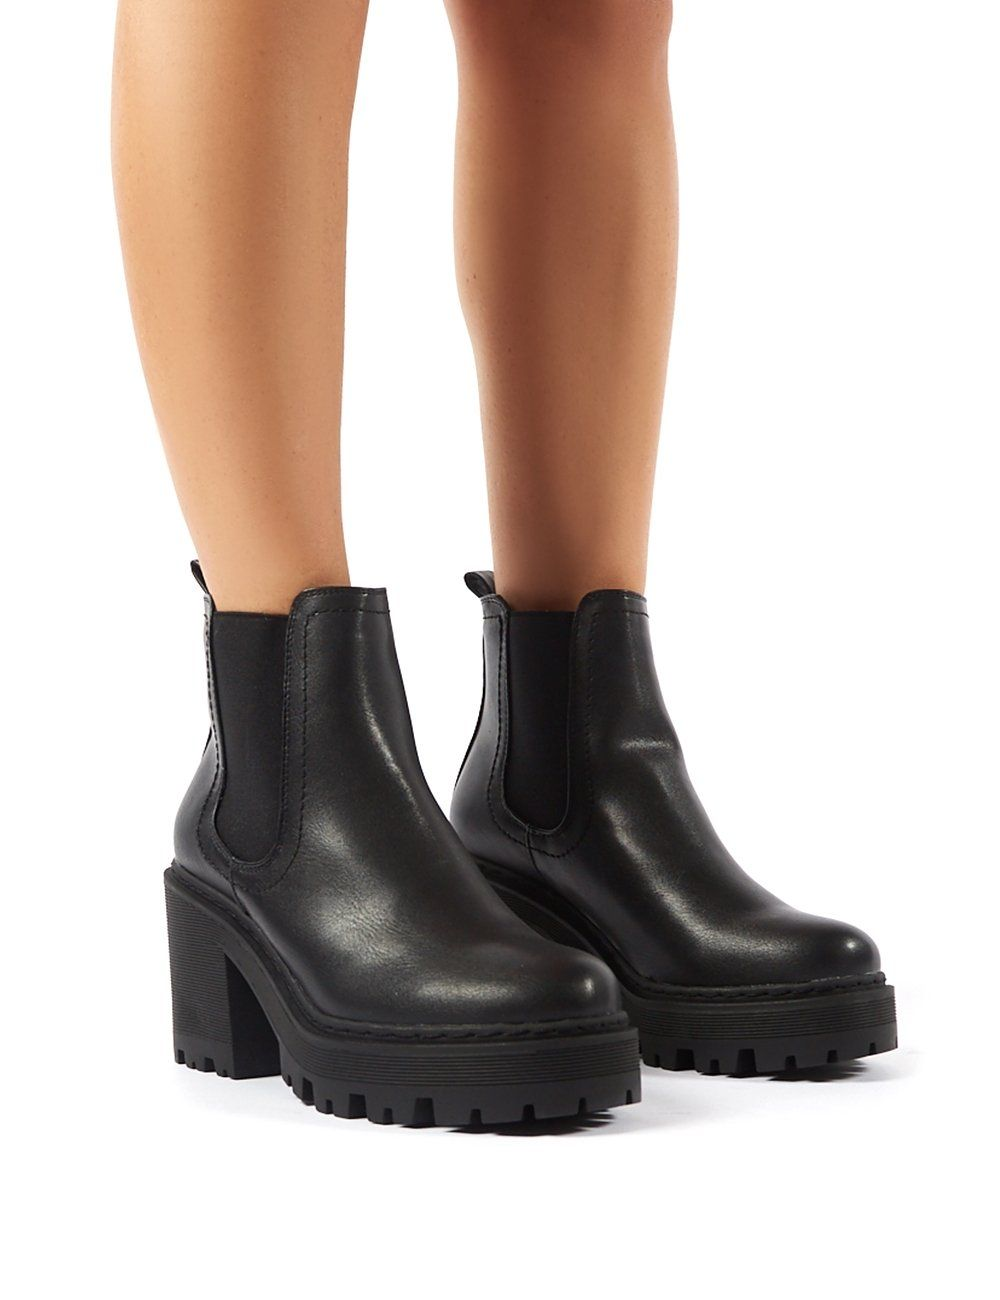 Kristy Black Cleated Sole Block Heeled